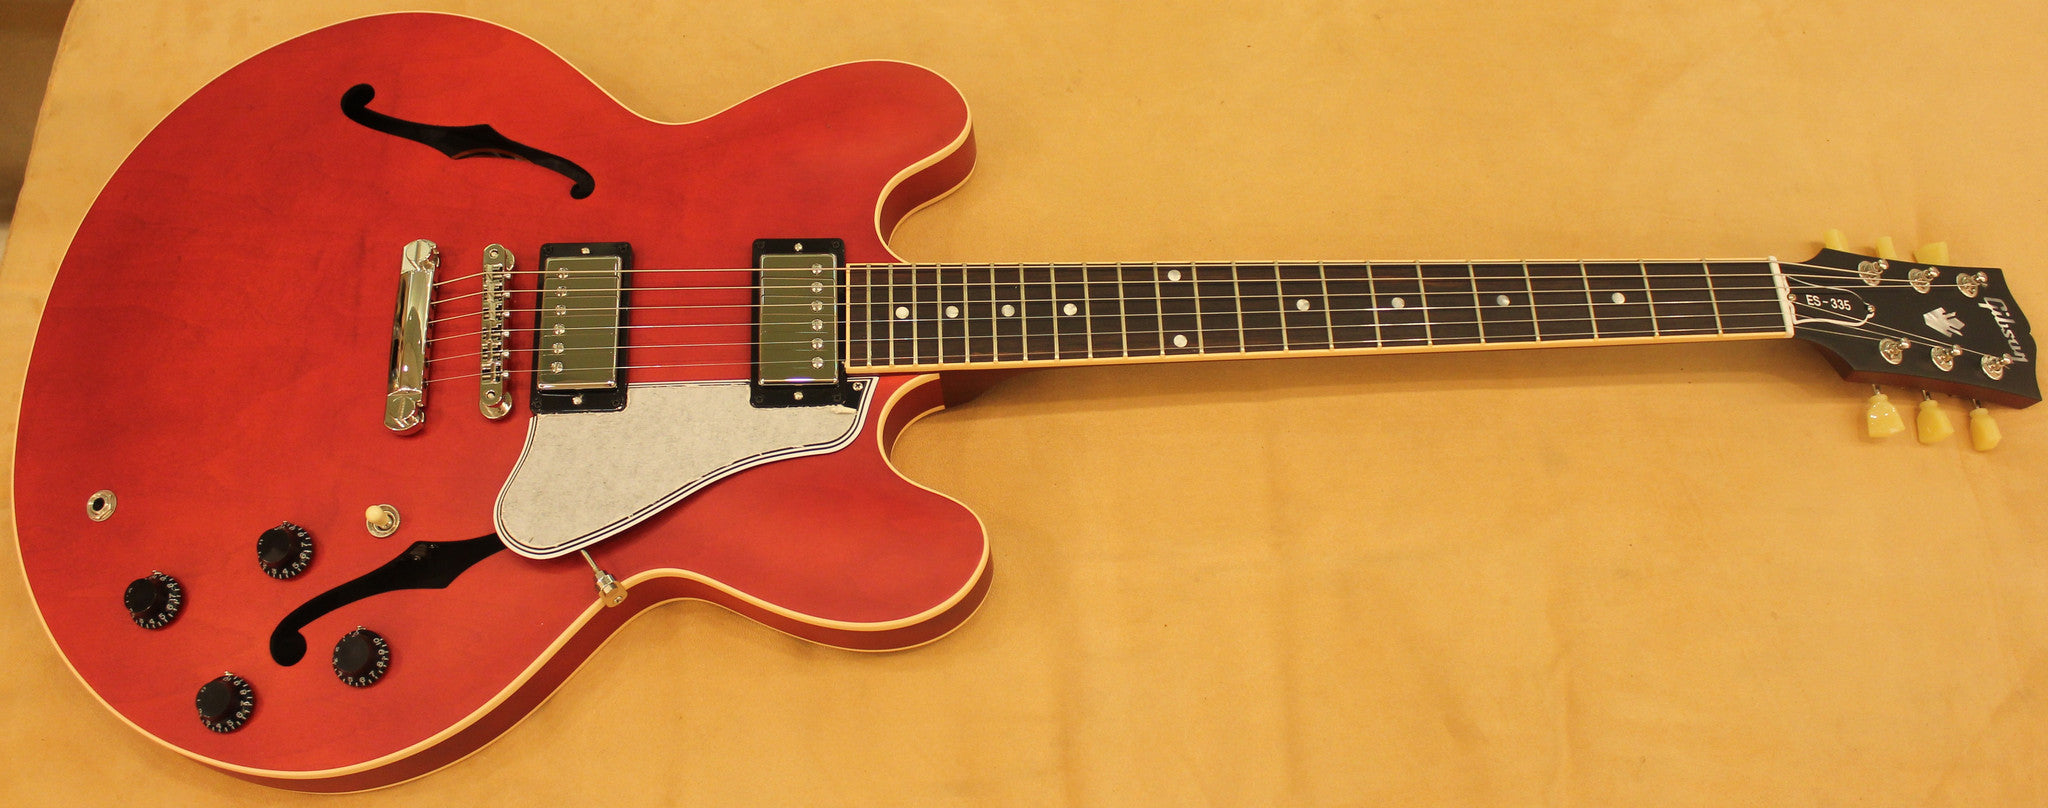 Gibson ES-335 TransRed (Faded Cherry) Gibson - HIENDGUITAR.COM